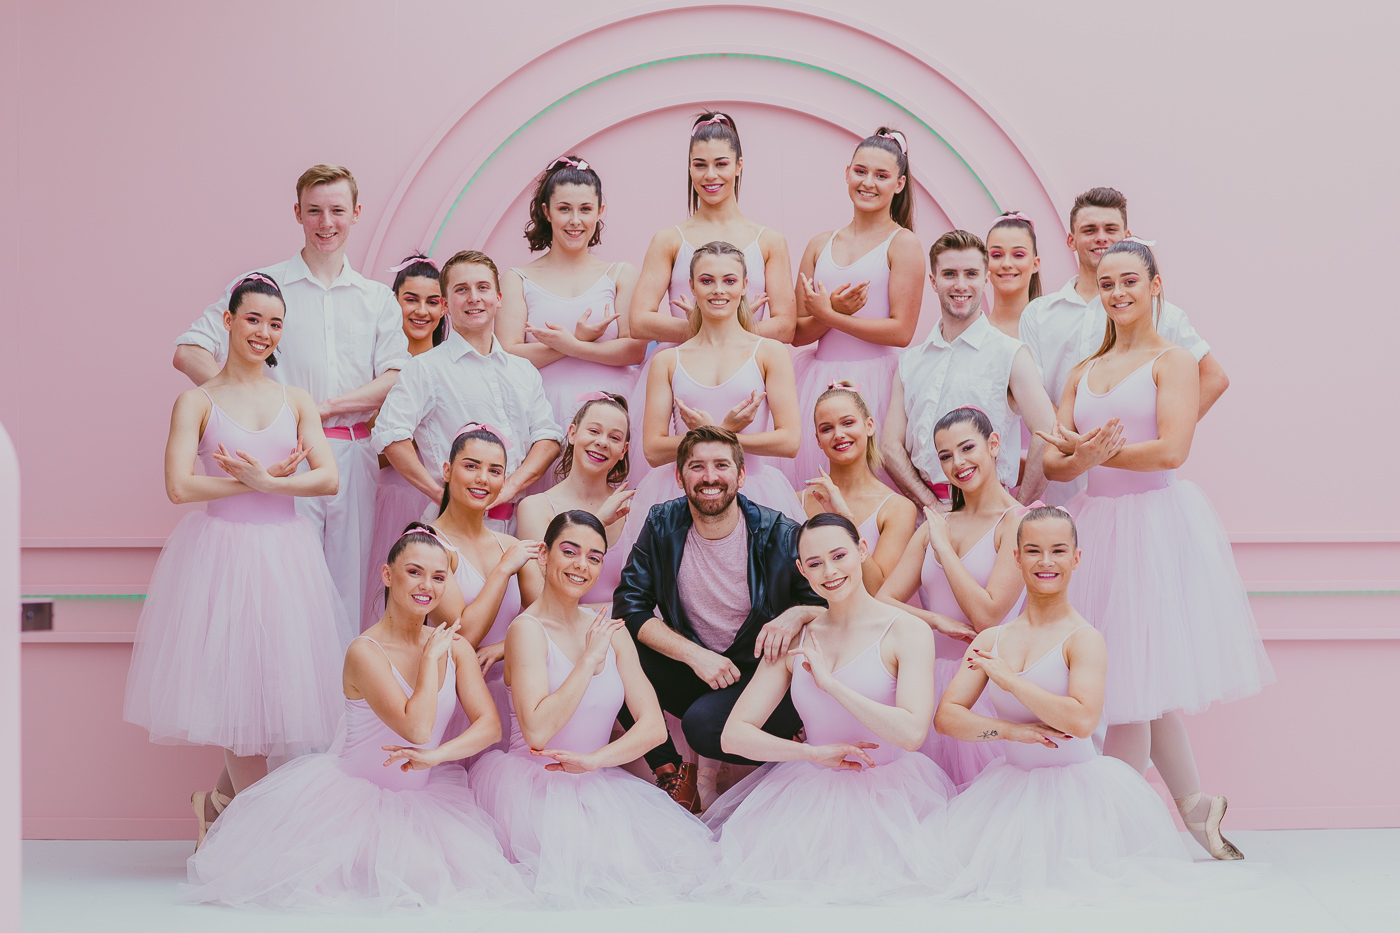 20-ballerina troop from Ministry of Entertainment closed out the launch